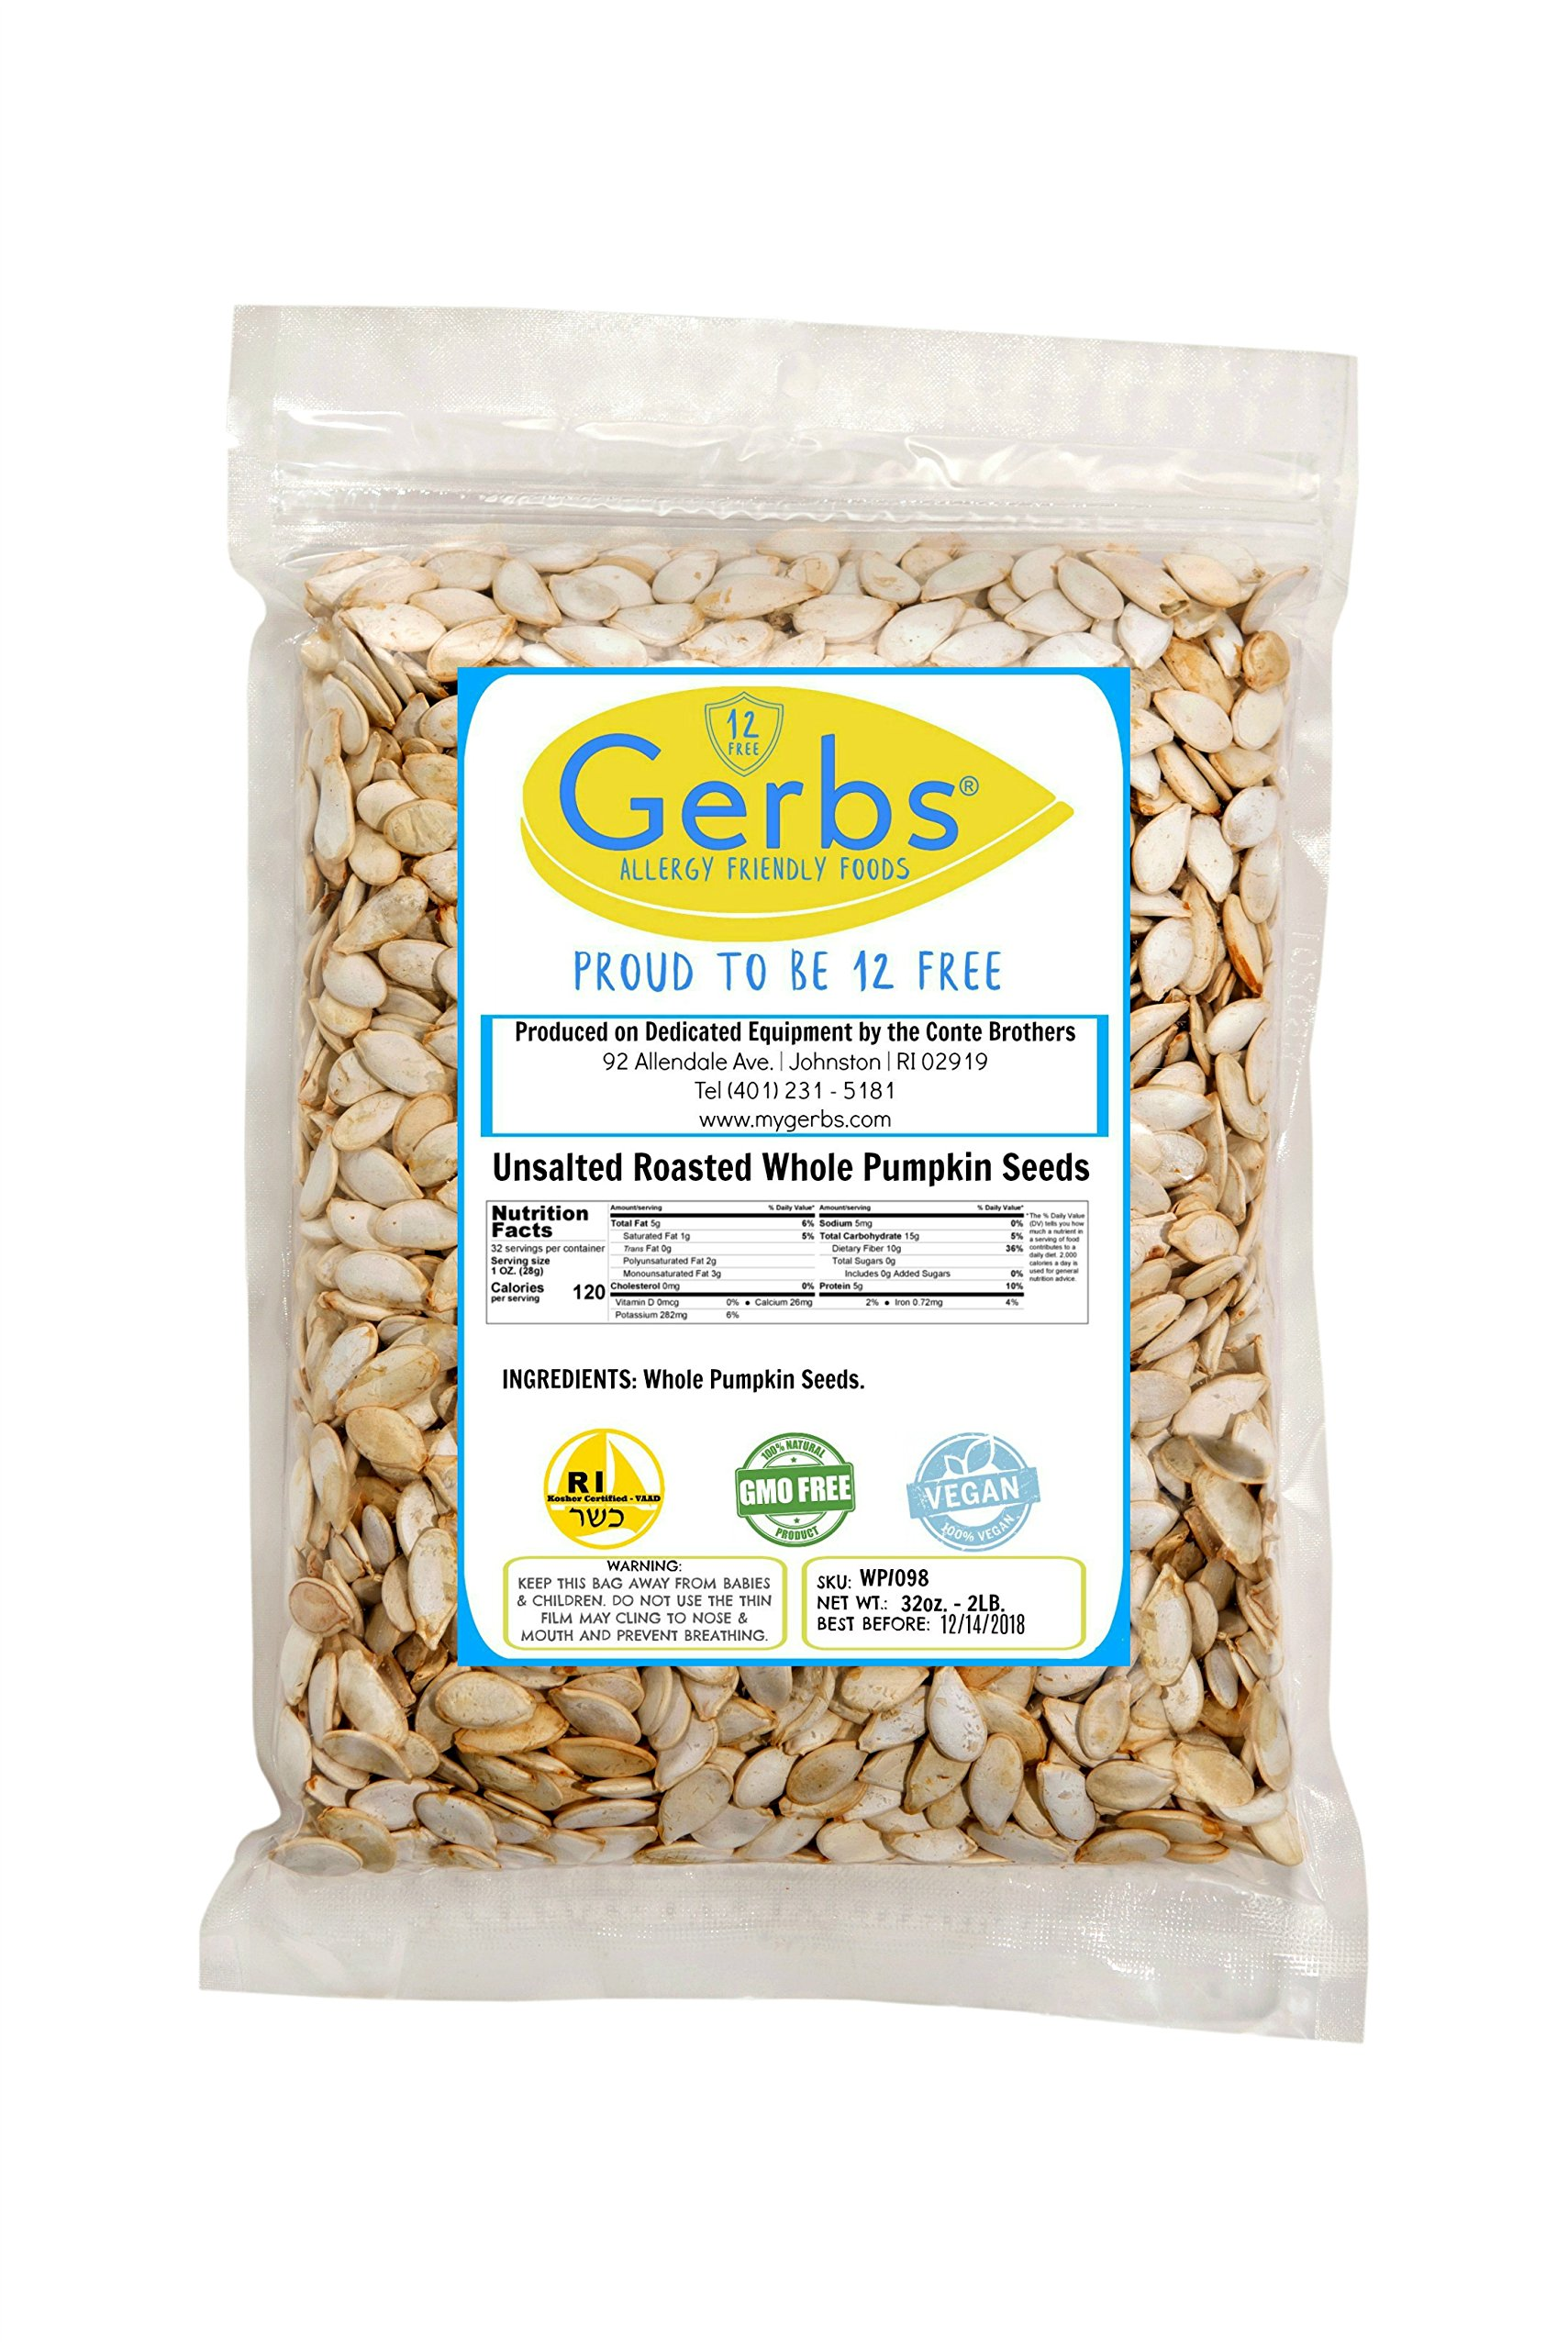 Unsalted Whole Pumpkin Seeds, 2 LBS by Gerbs – Top 12 Food Allergy Free & Non GMO - Vegan & Kosher Certified - Dry Roasted In-Shell Pepitas from United States